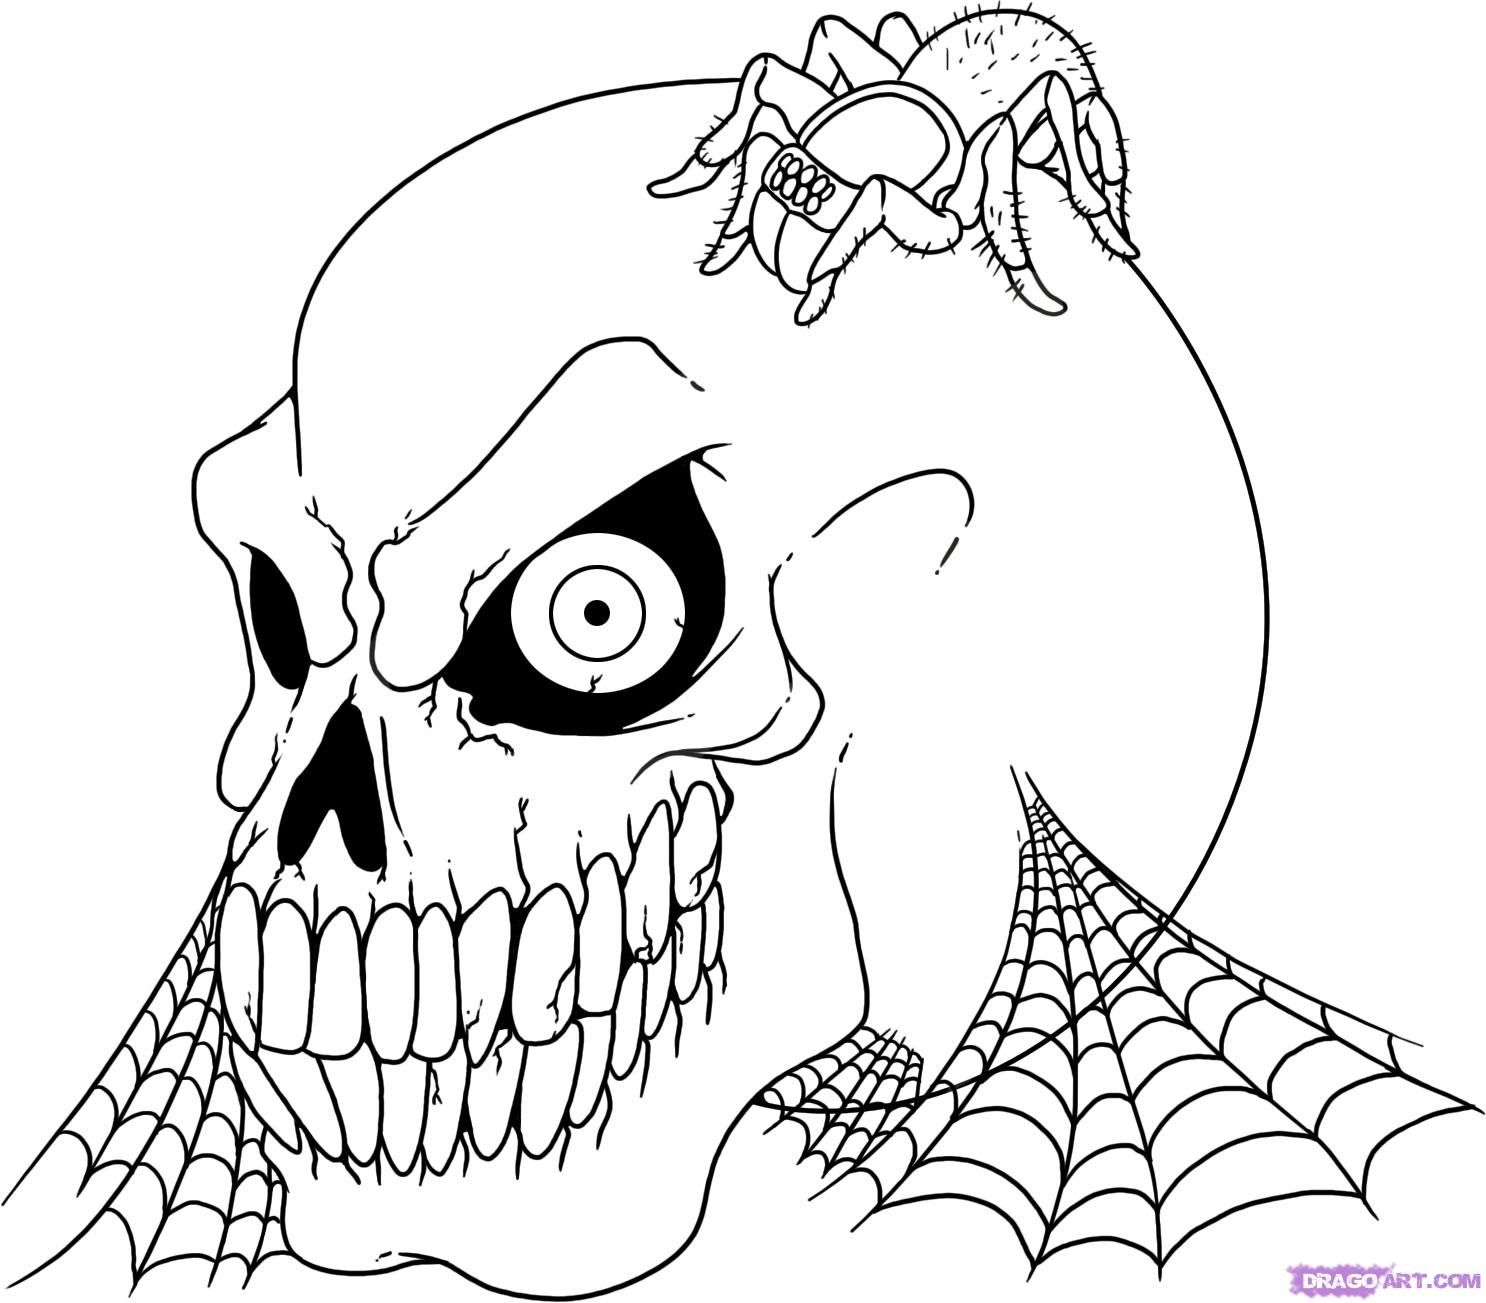 skeleton-coloring-page-0006-q1